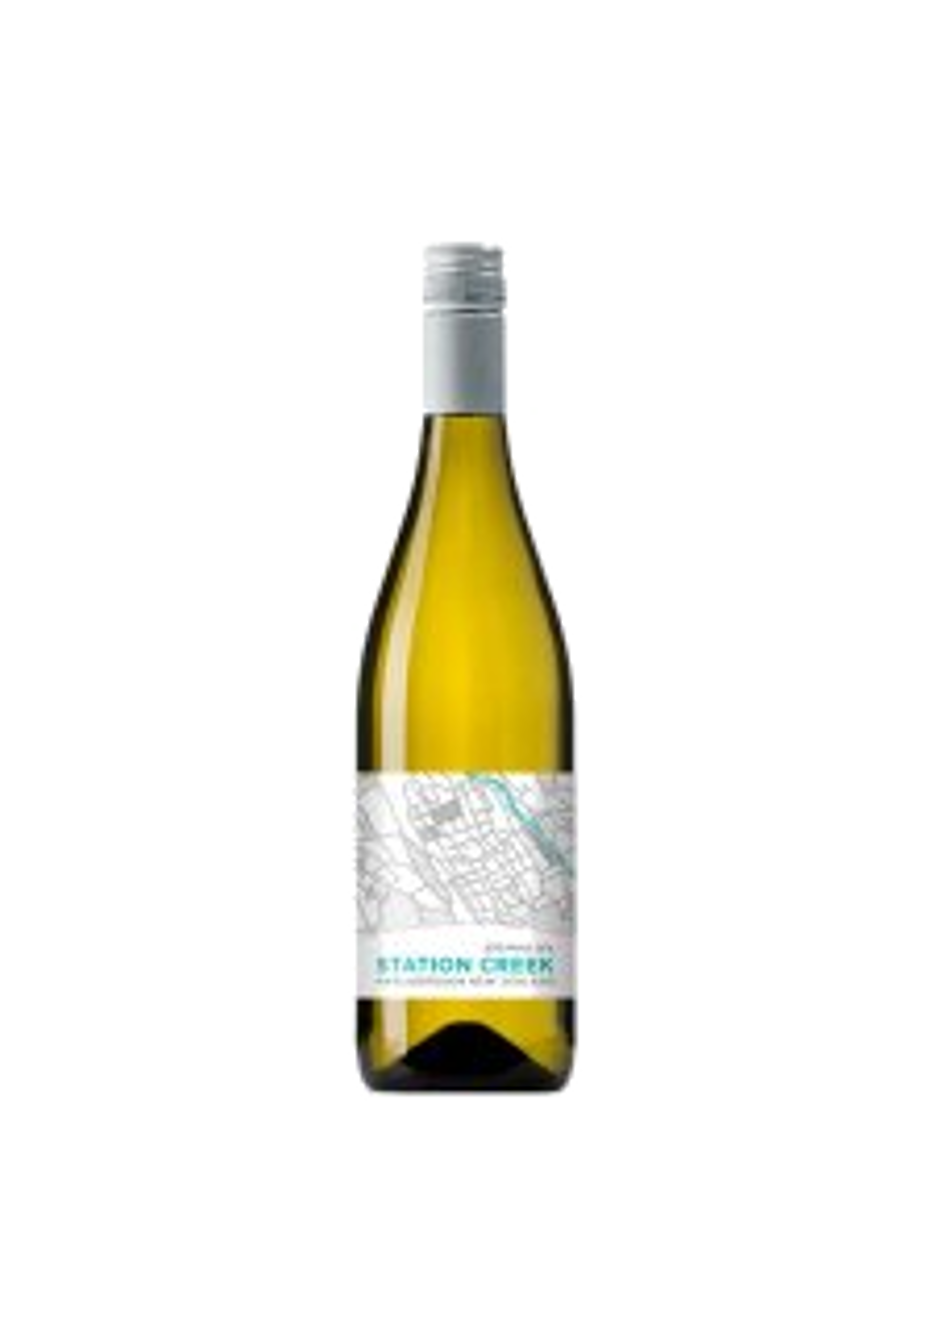 Station Creek Marlborough Pinot Gris 2015